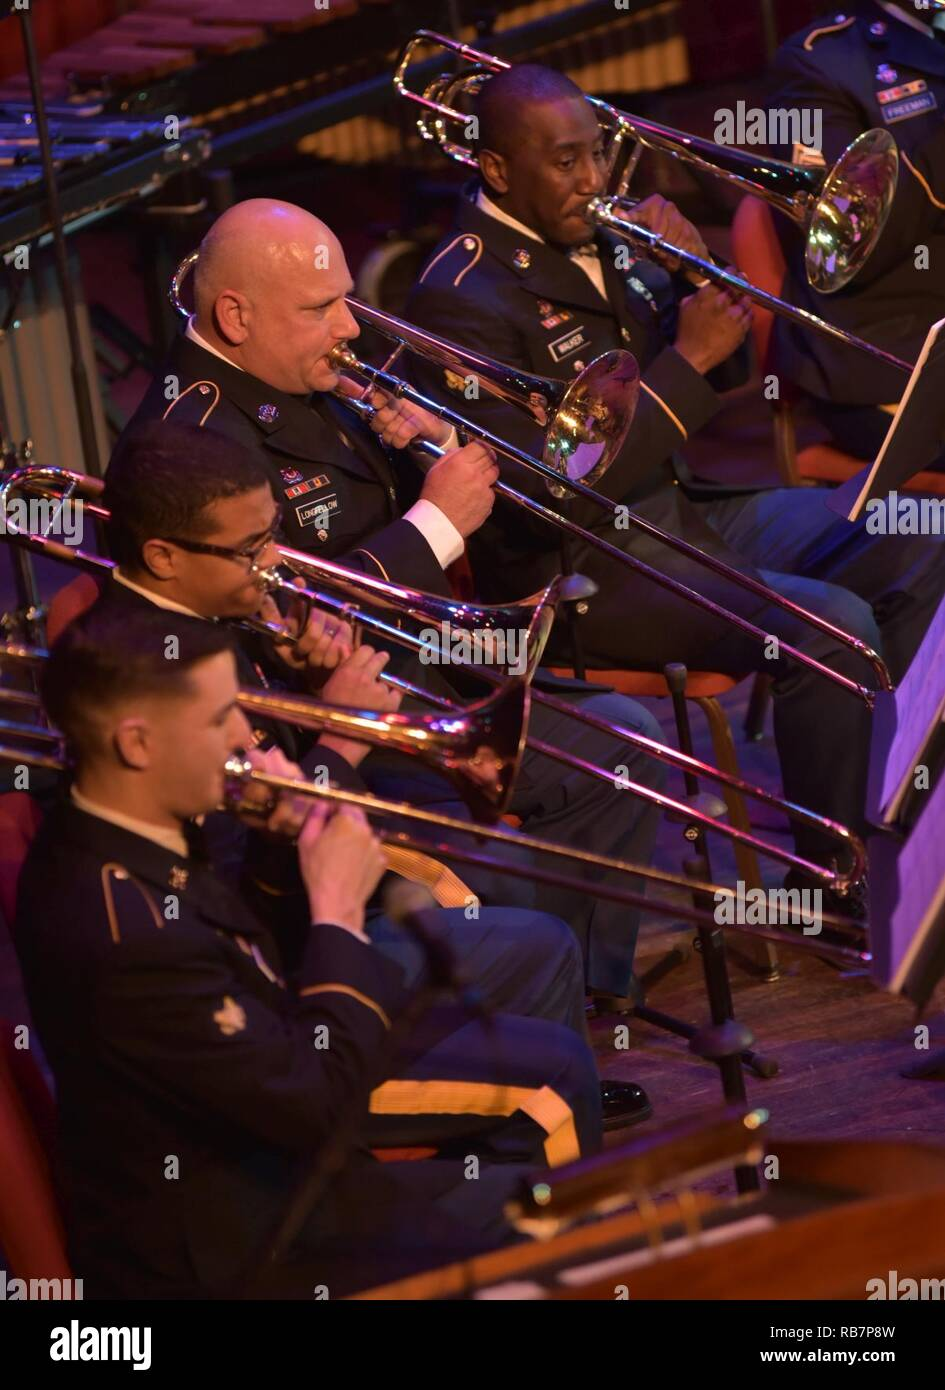 12/7/16- Spc. Samuel Dimov, Sgt. Francis Rivera-Murray, First Sgt. Charles Longfellow and Spc. Shawn Walker all play their trombone with the 287th Army Band at their annual Holiday Concert on the main stage at the Grand Opera House in Wilmington, Delaware, December 7, 2016. - Stock Image